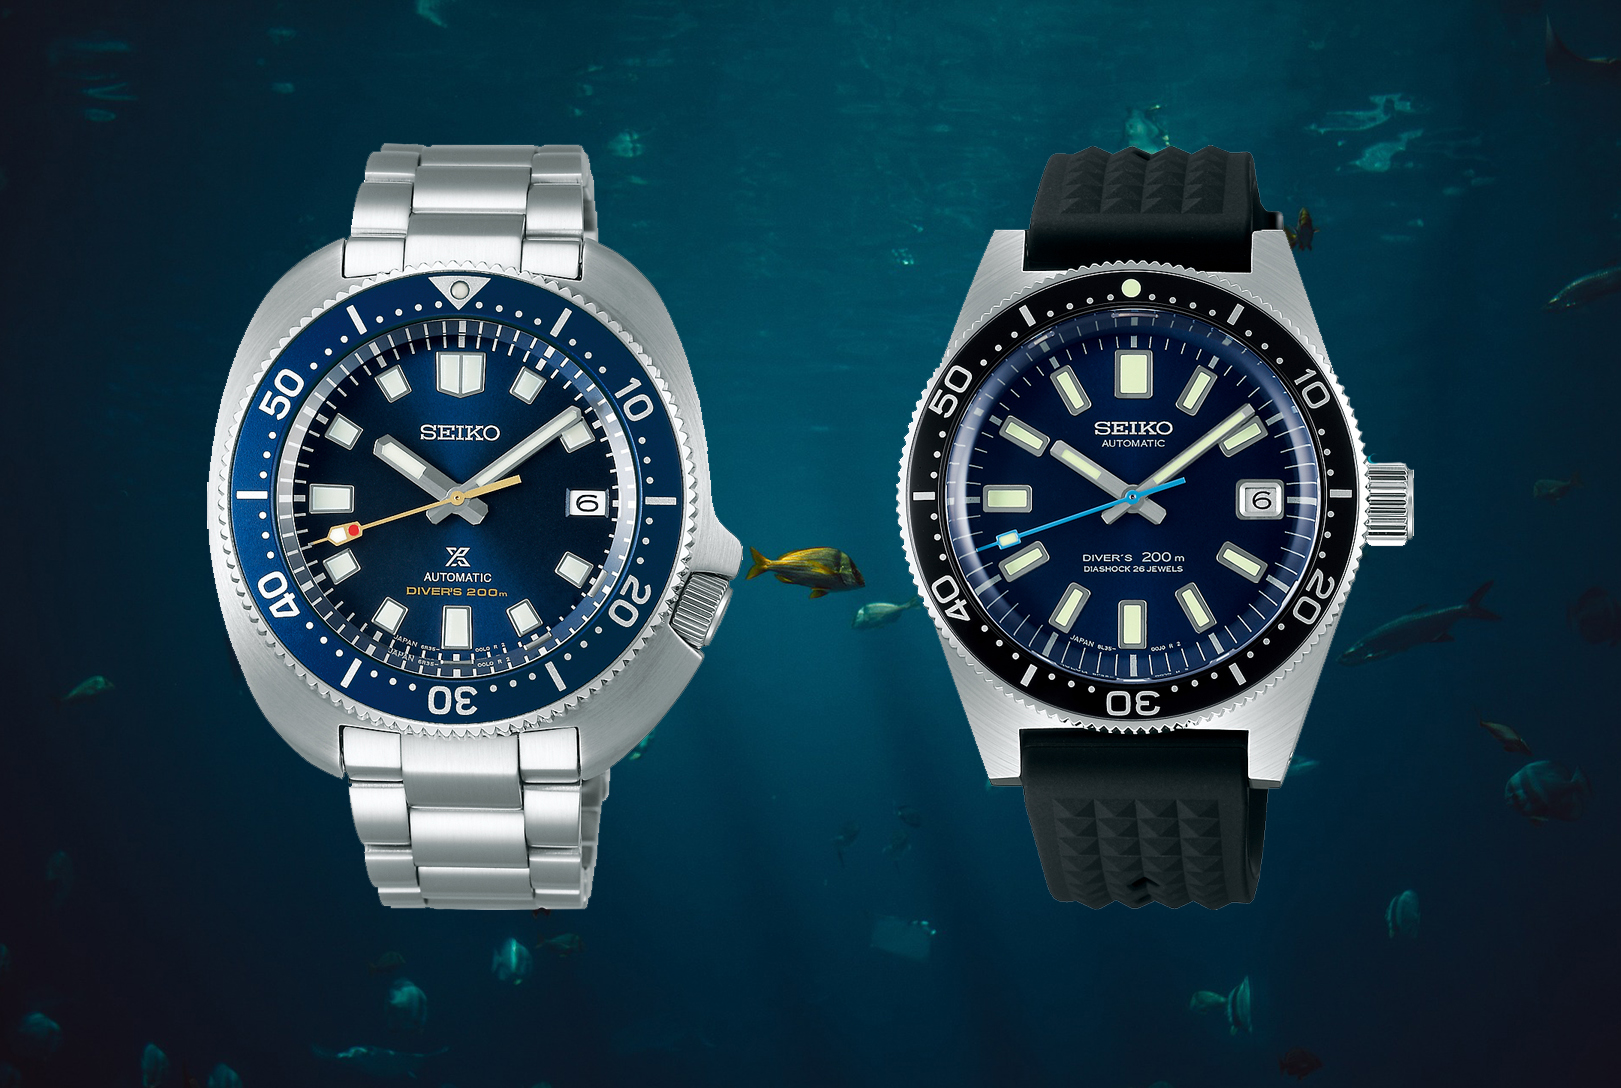 Prospex Divers Limited Edition